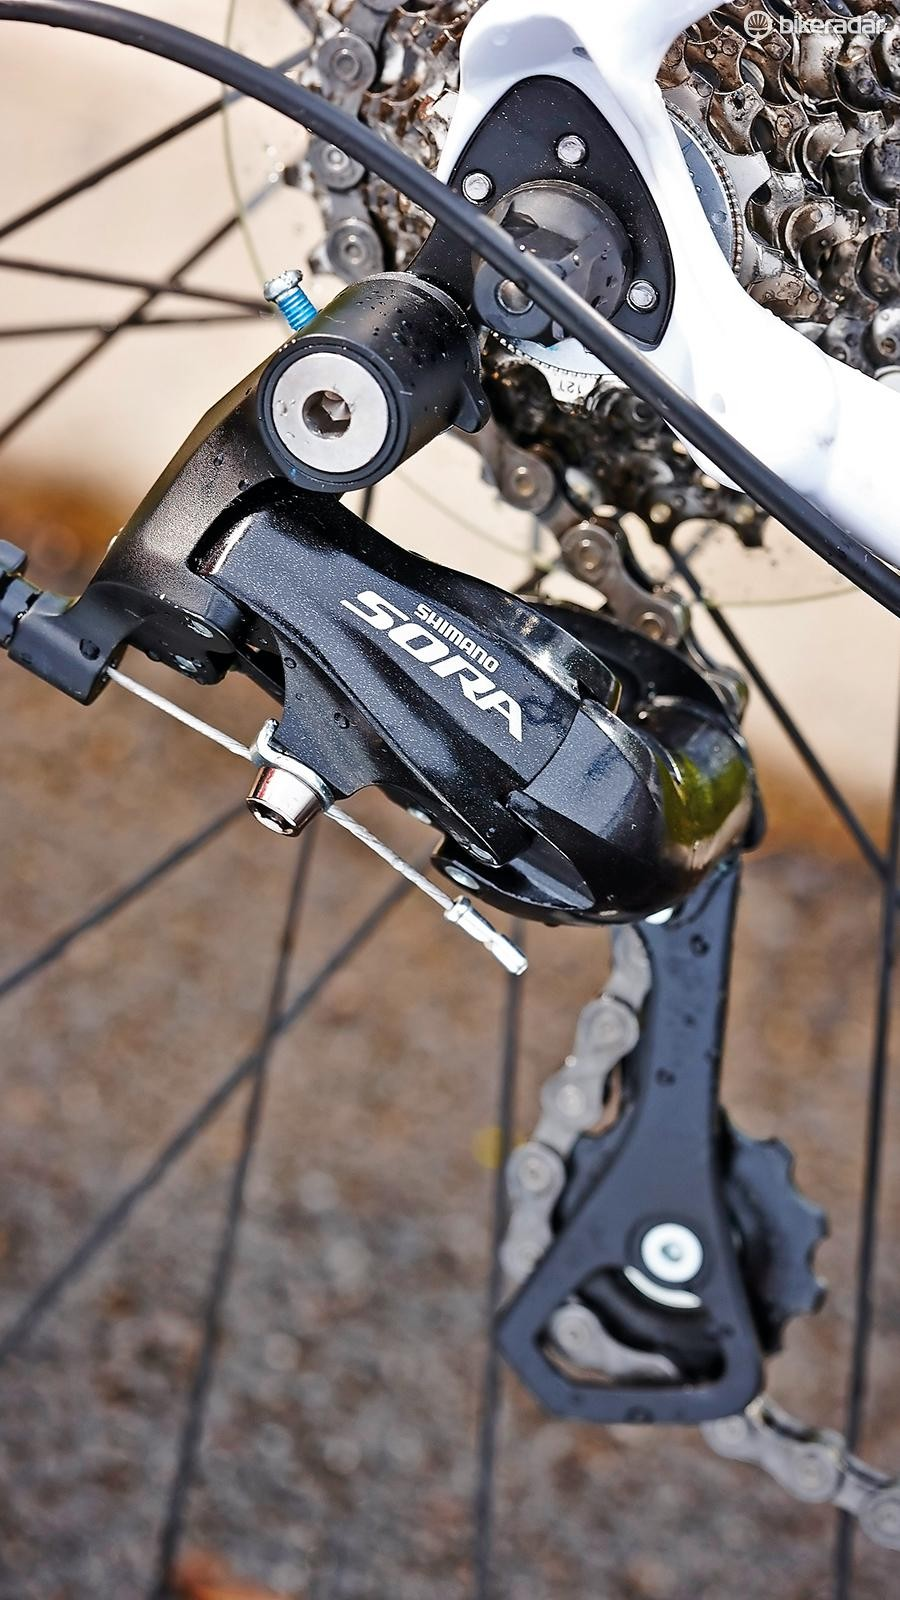 Shimano's nine-speed Sora works well and has a light shifting action